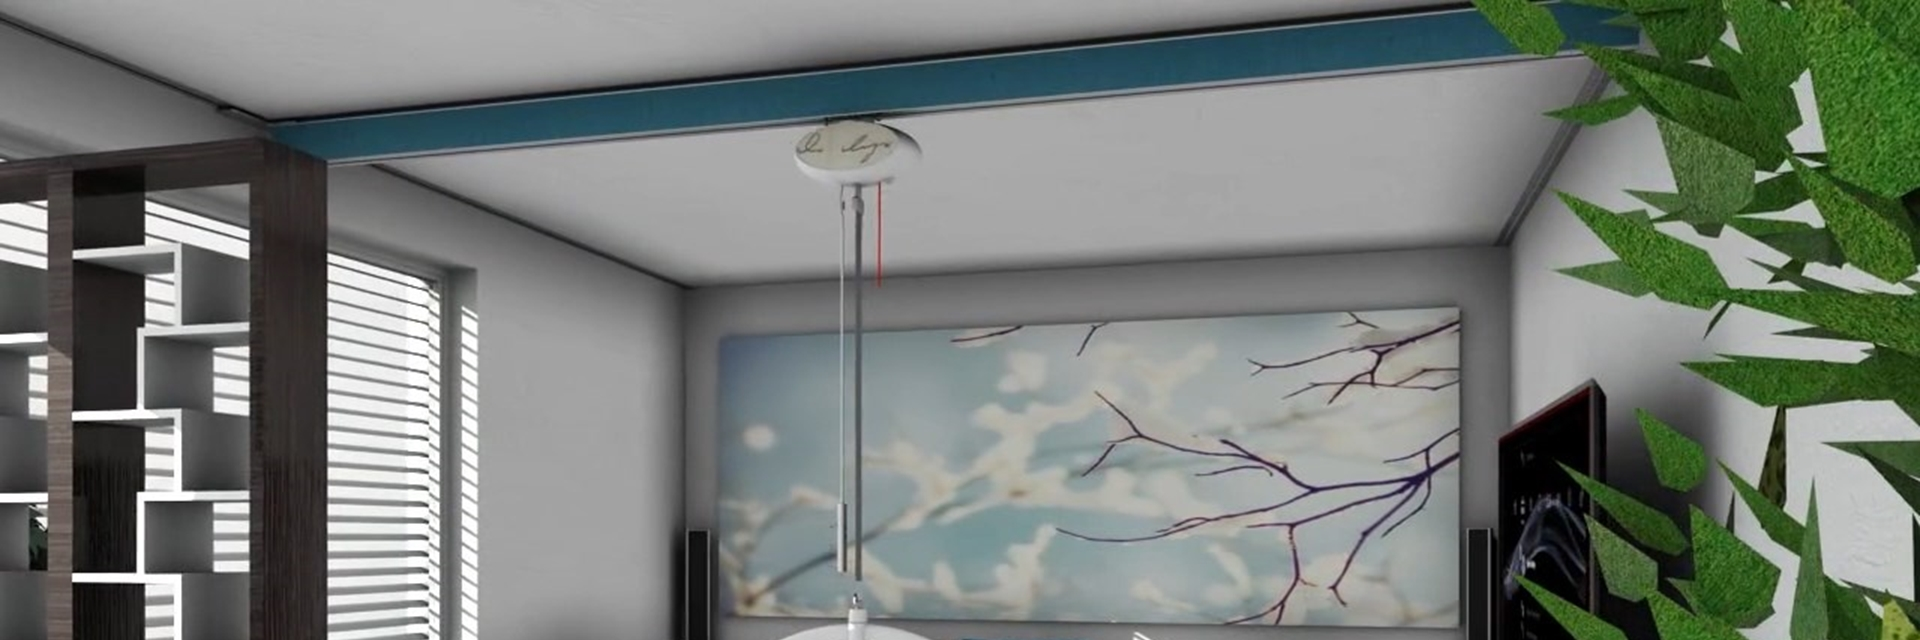 they are designed for permanent/semi-permanent installation in ceiling- or wall-mounted rails.